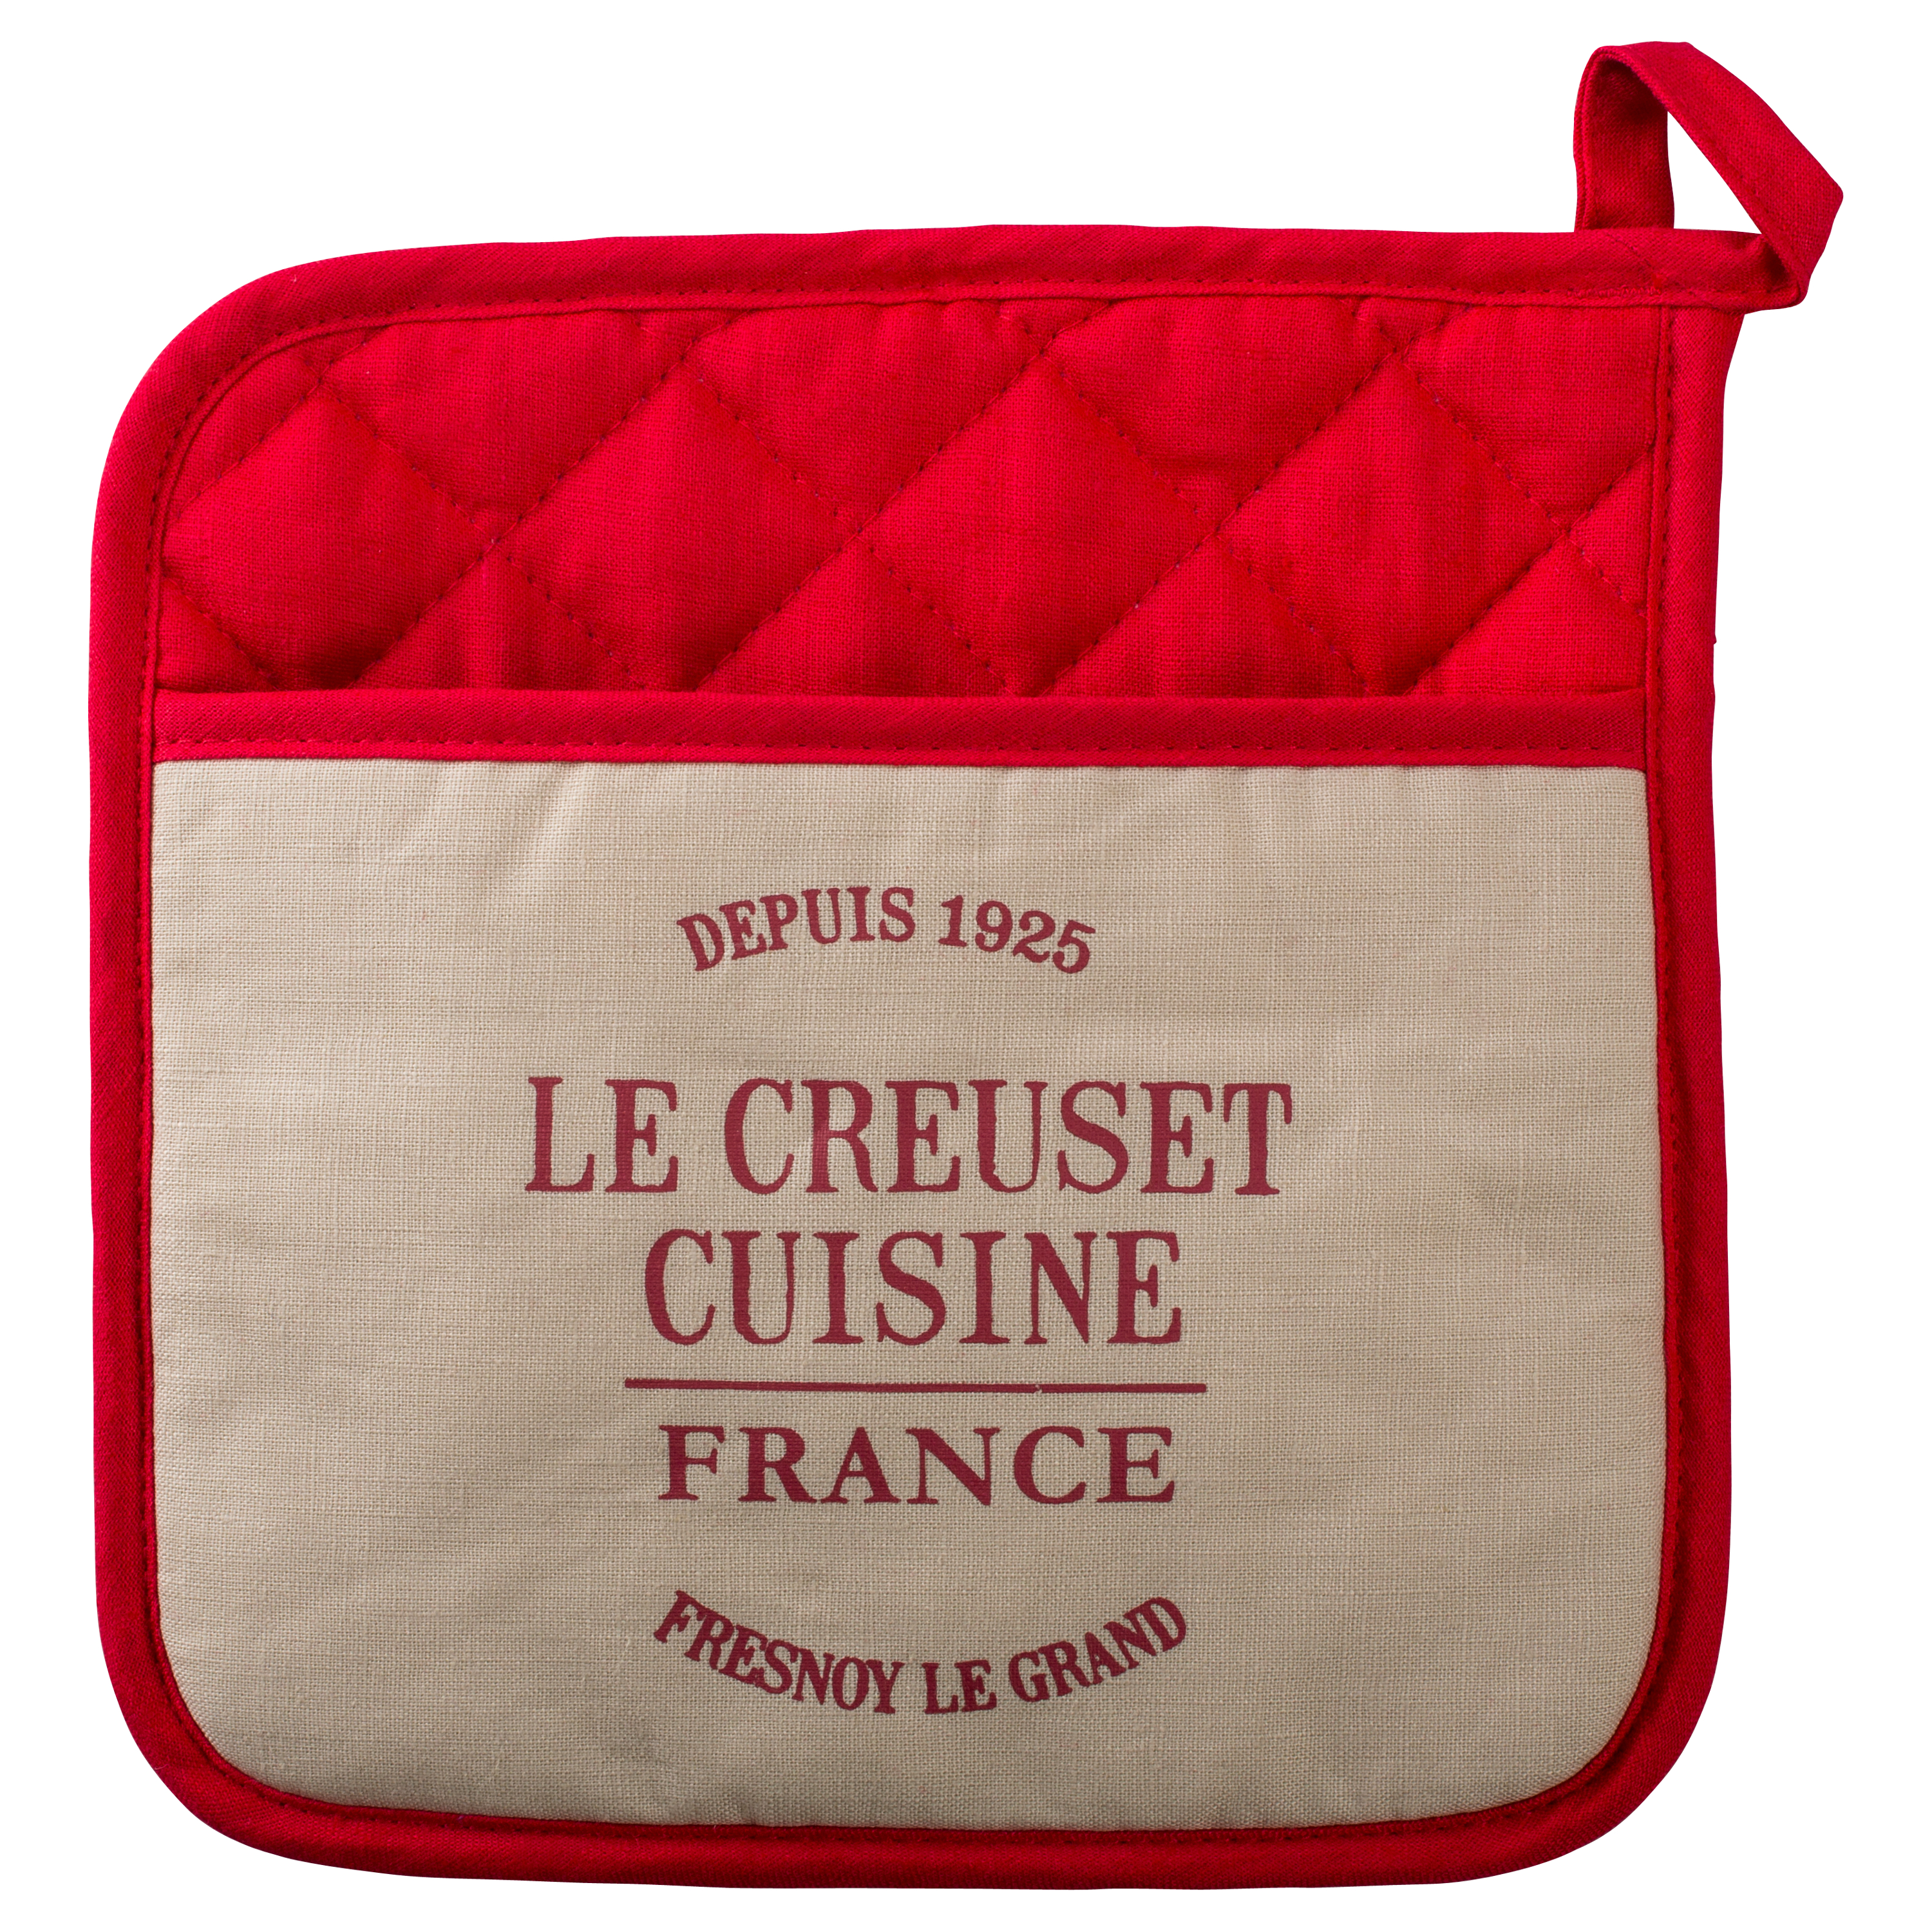 Le Creuset Heritage Cherry 9 x 9 Inch Pot Holder